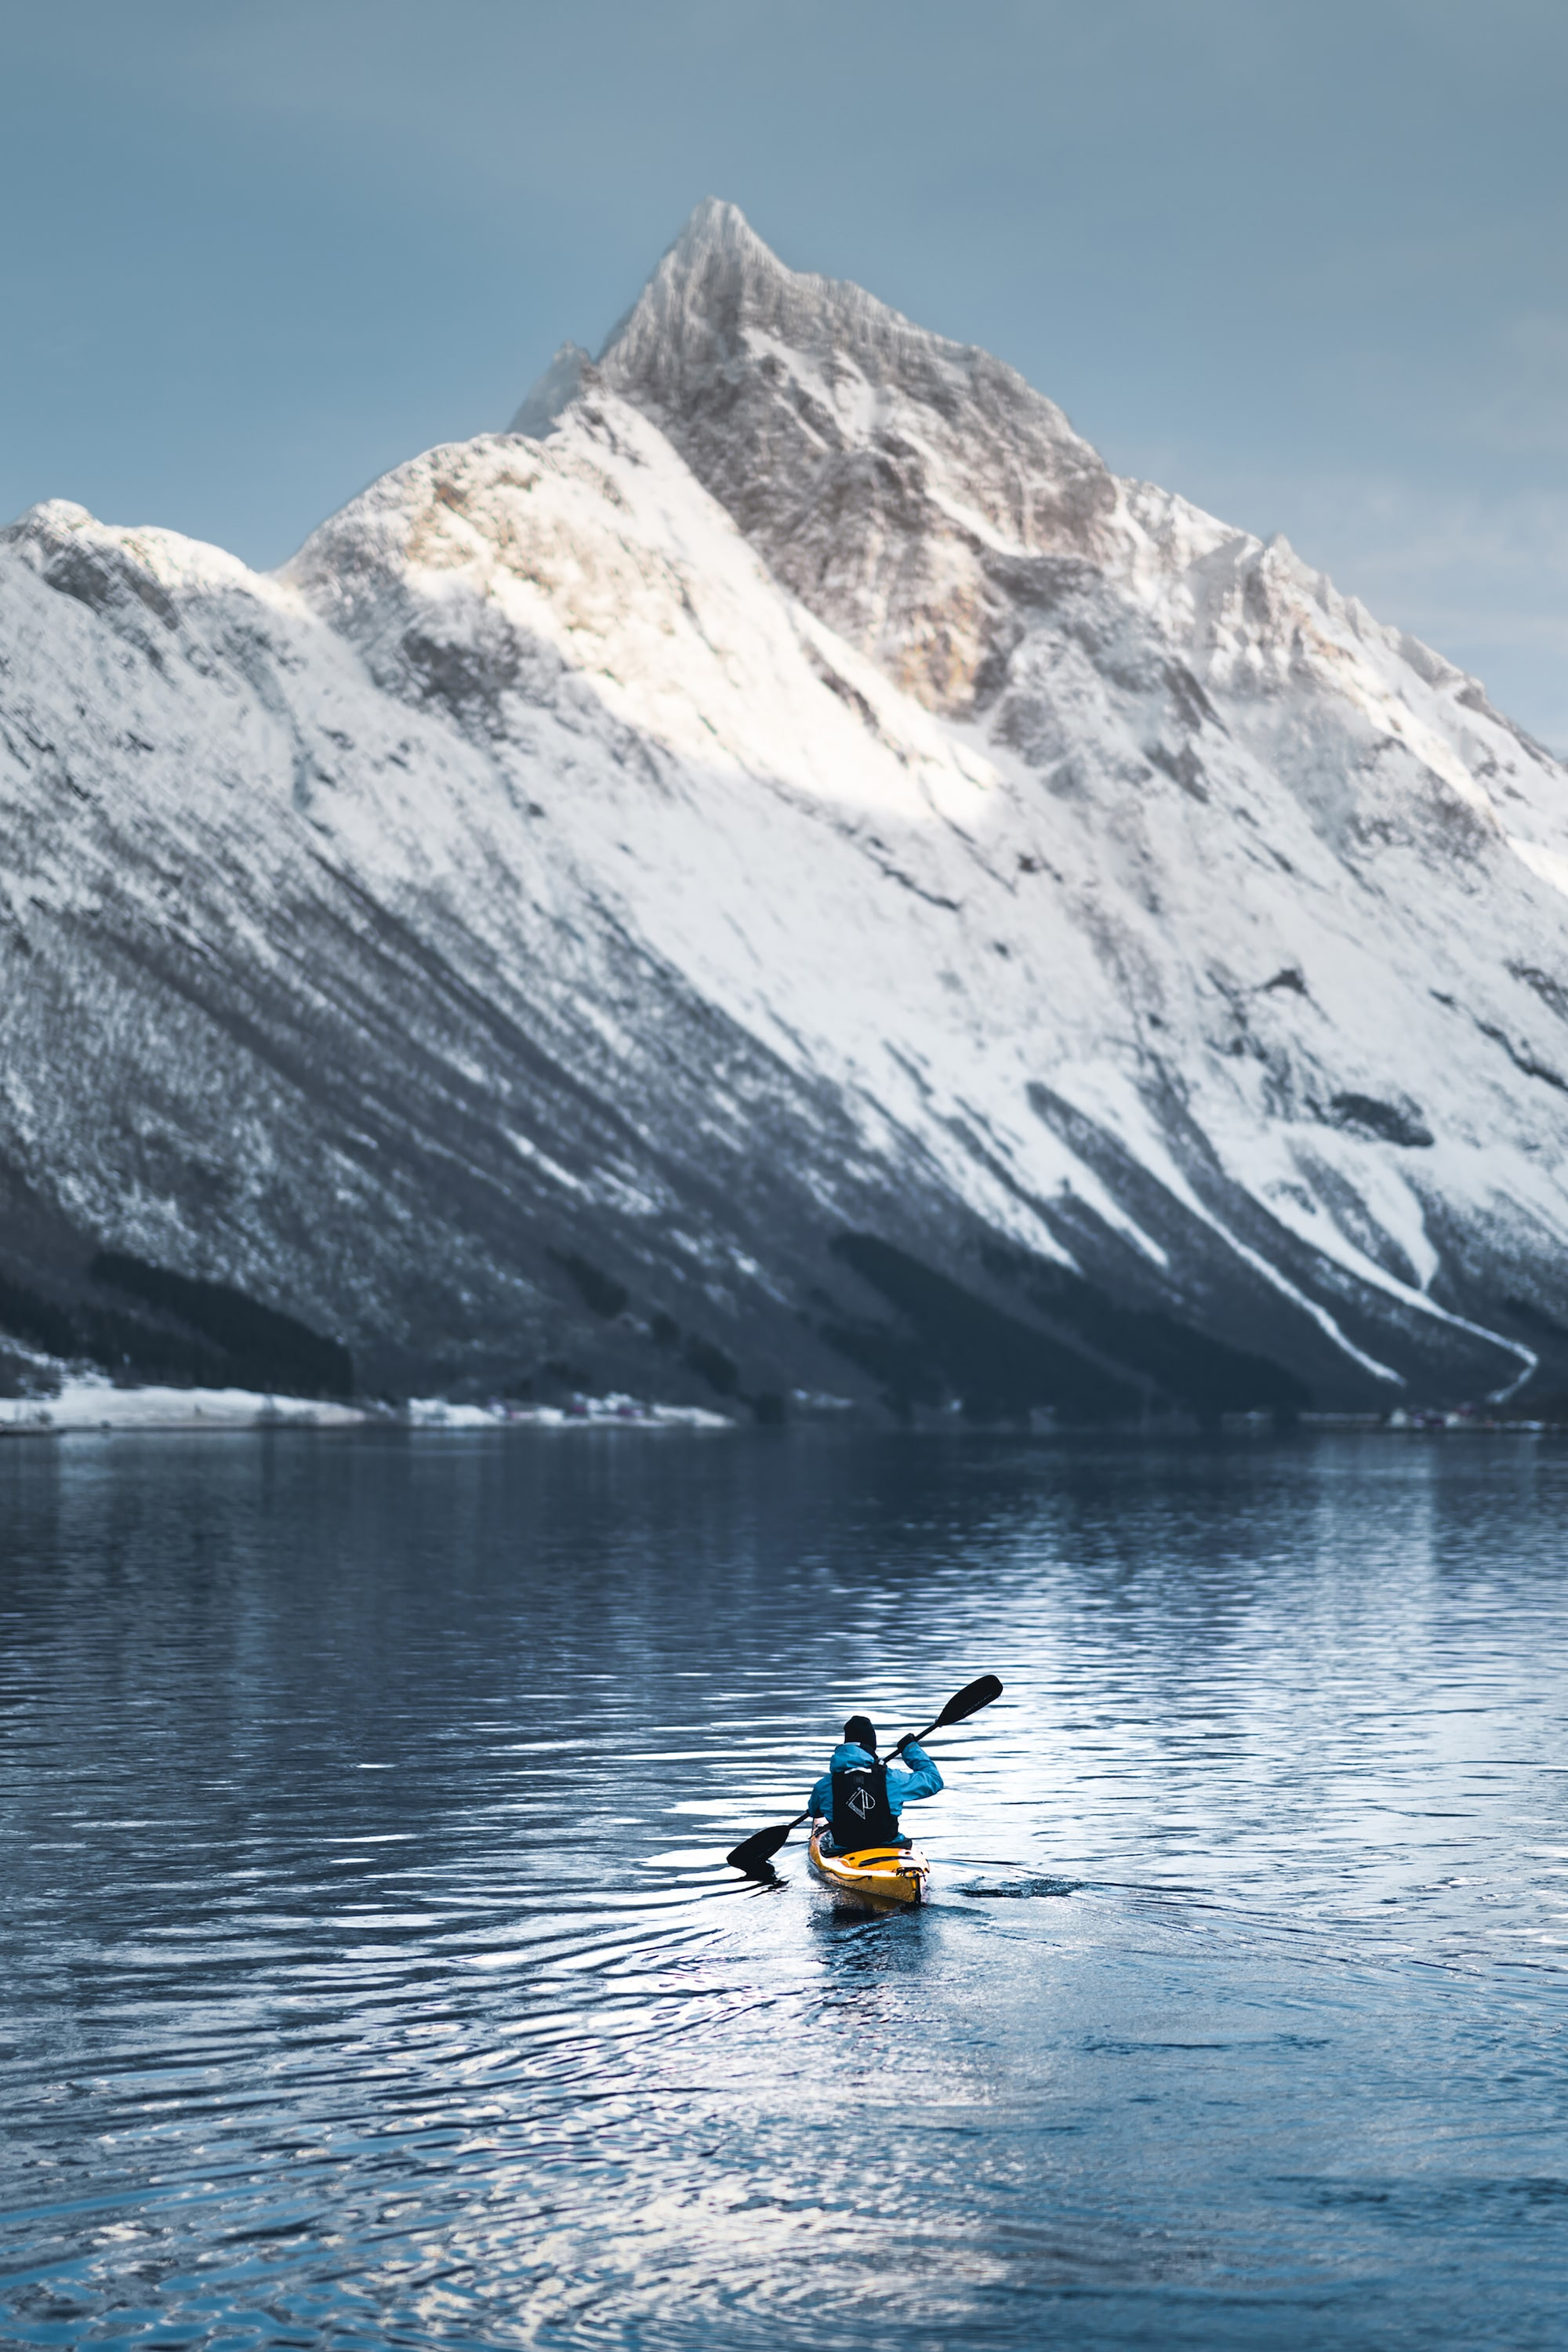 Kyle-Meyr-Sony-alpha-9-canoeist-makes-his-way-across-lake-towards-mountain